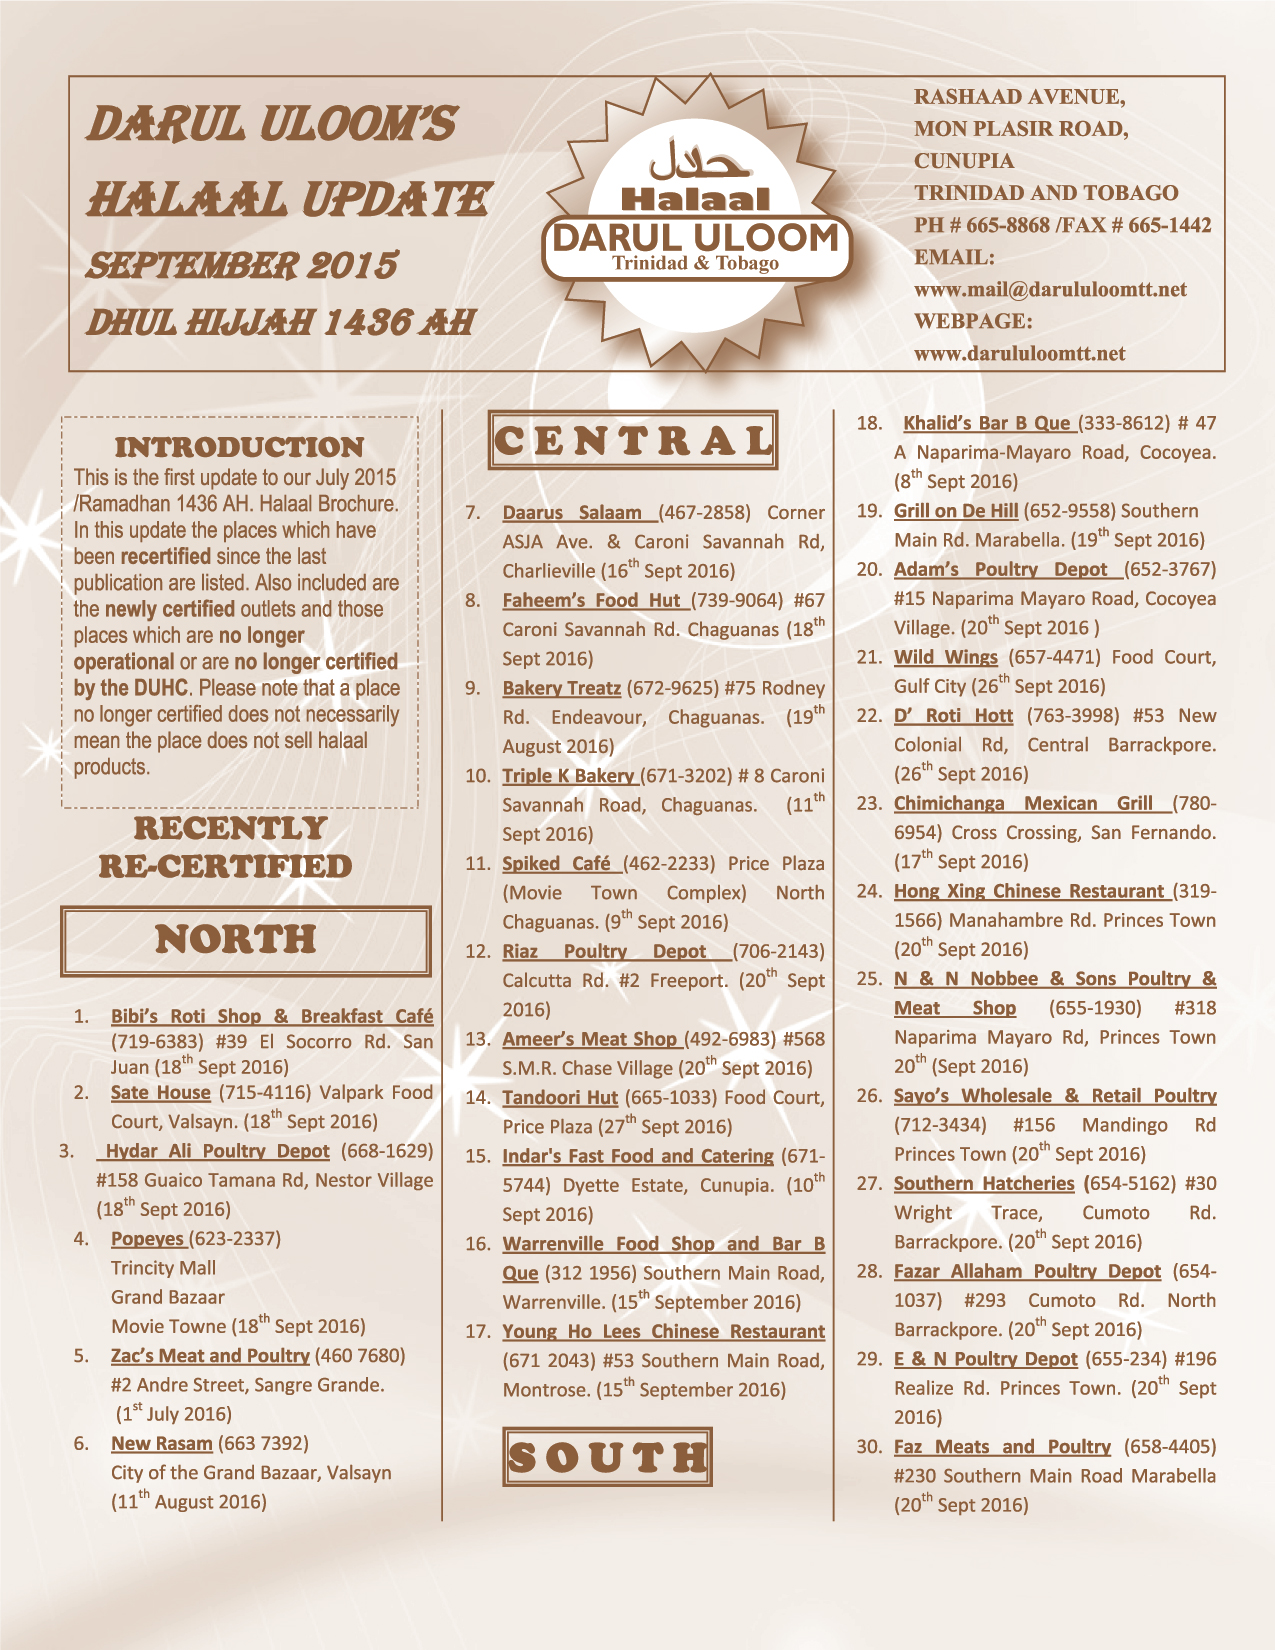 Darul Uloom Halaal Update September 2015 Flyer-01